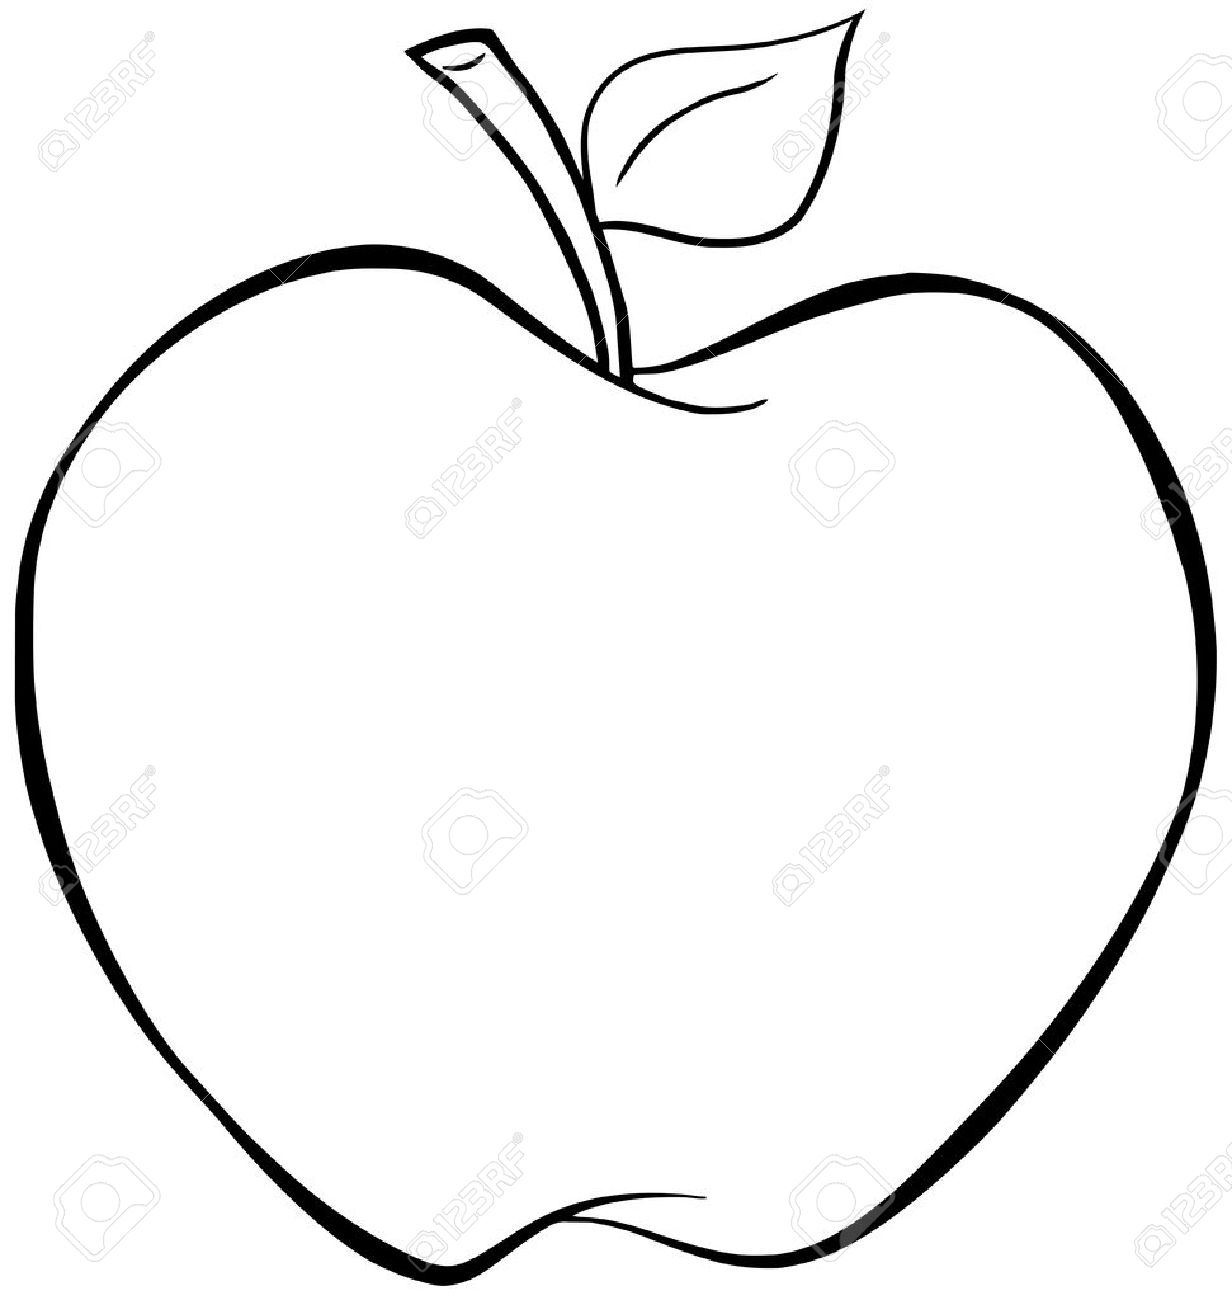 1232x1300 Outlined Cartoon Apple Royalty Free Cliparts, Vectors, And Stock